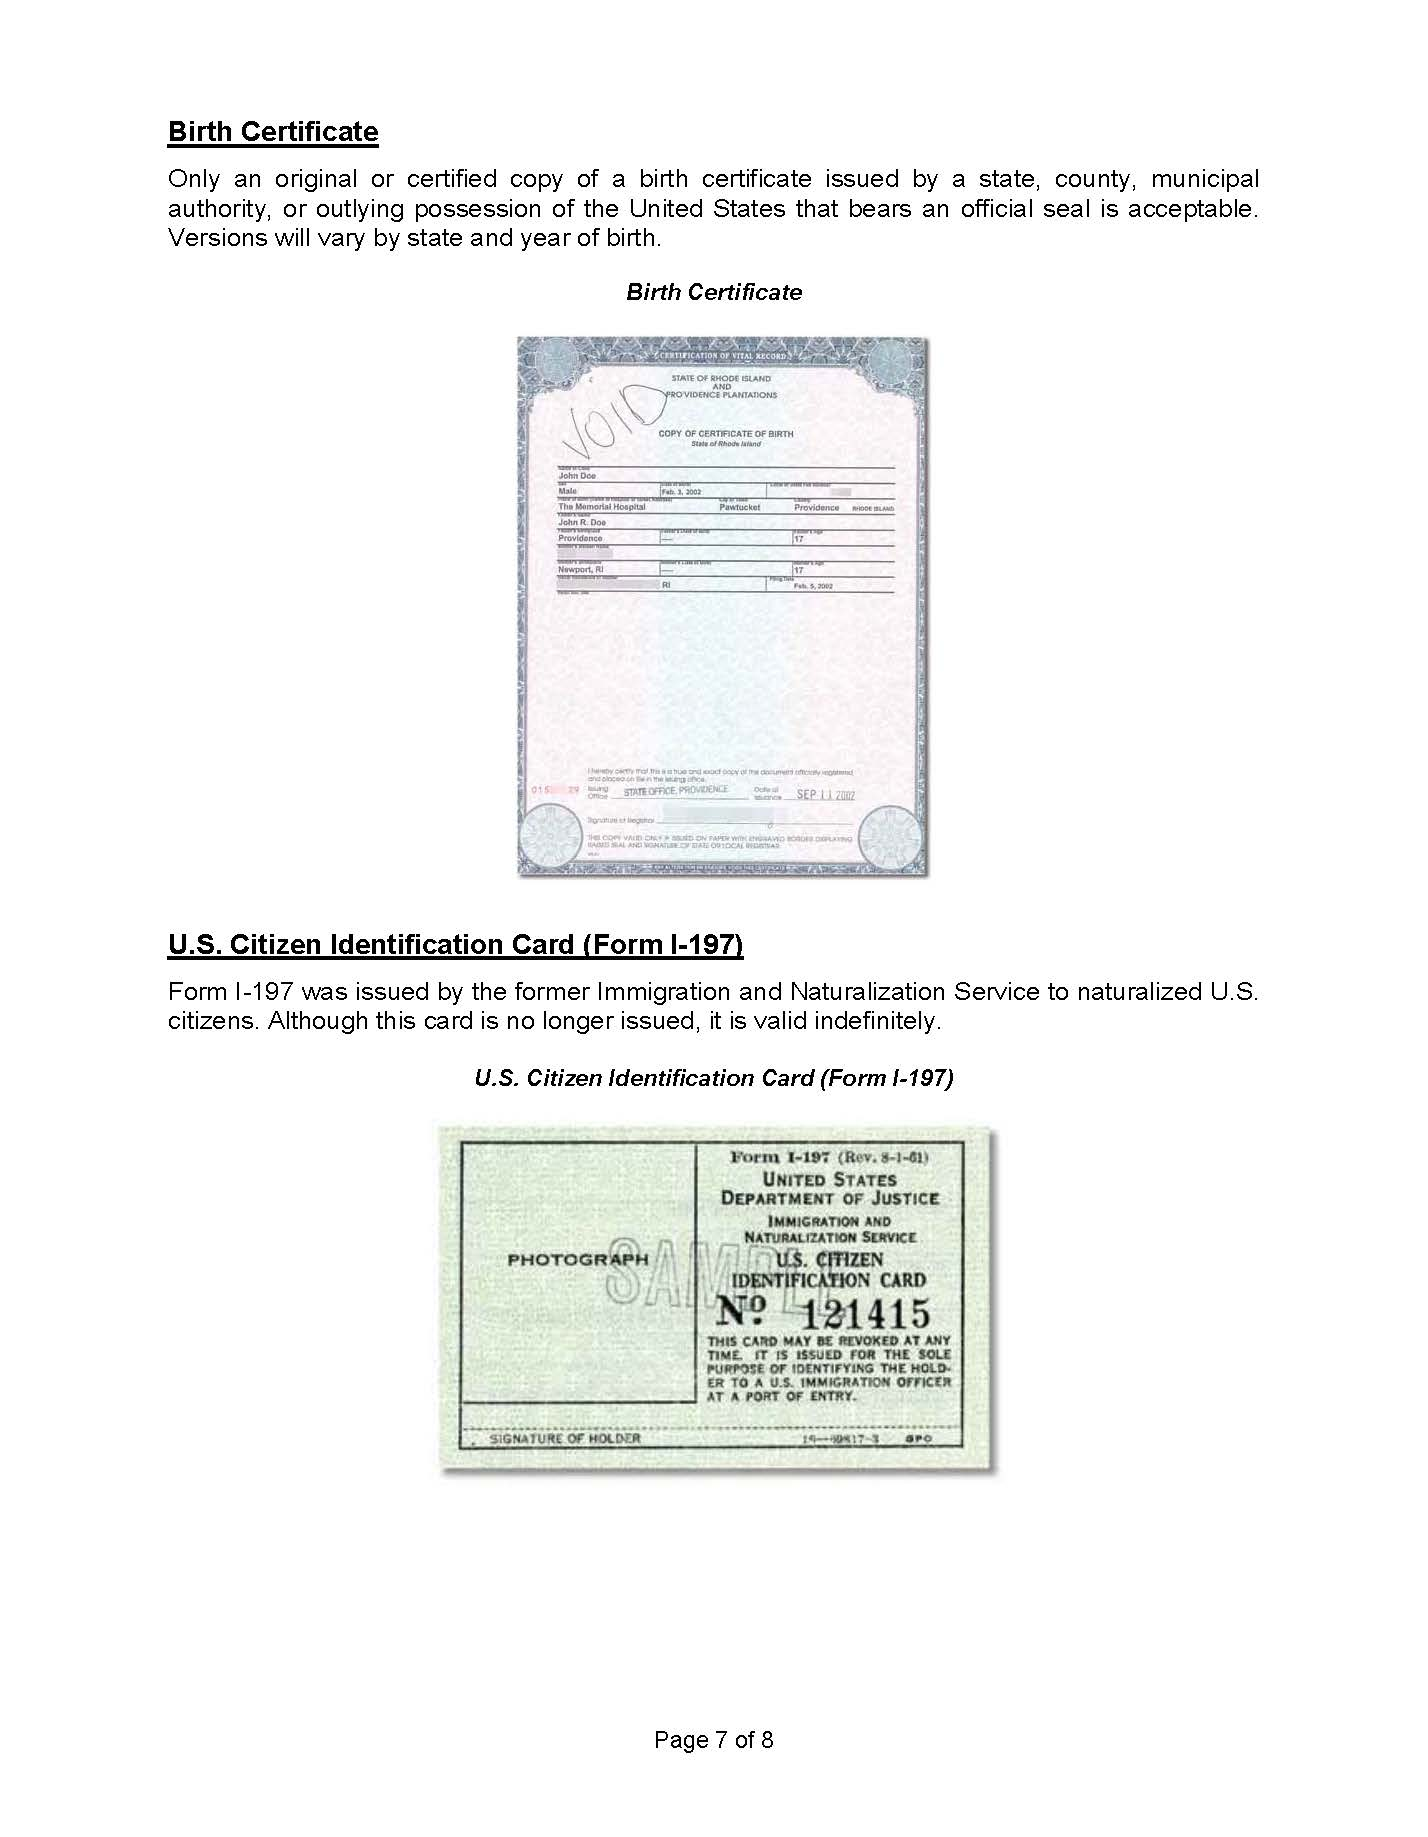 OOTB I-9 Acceptable Employee Verification Documents_Page_8.jpg